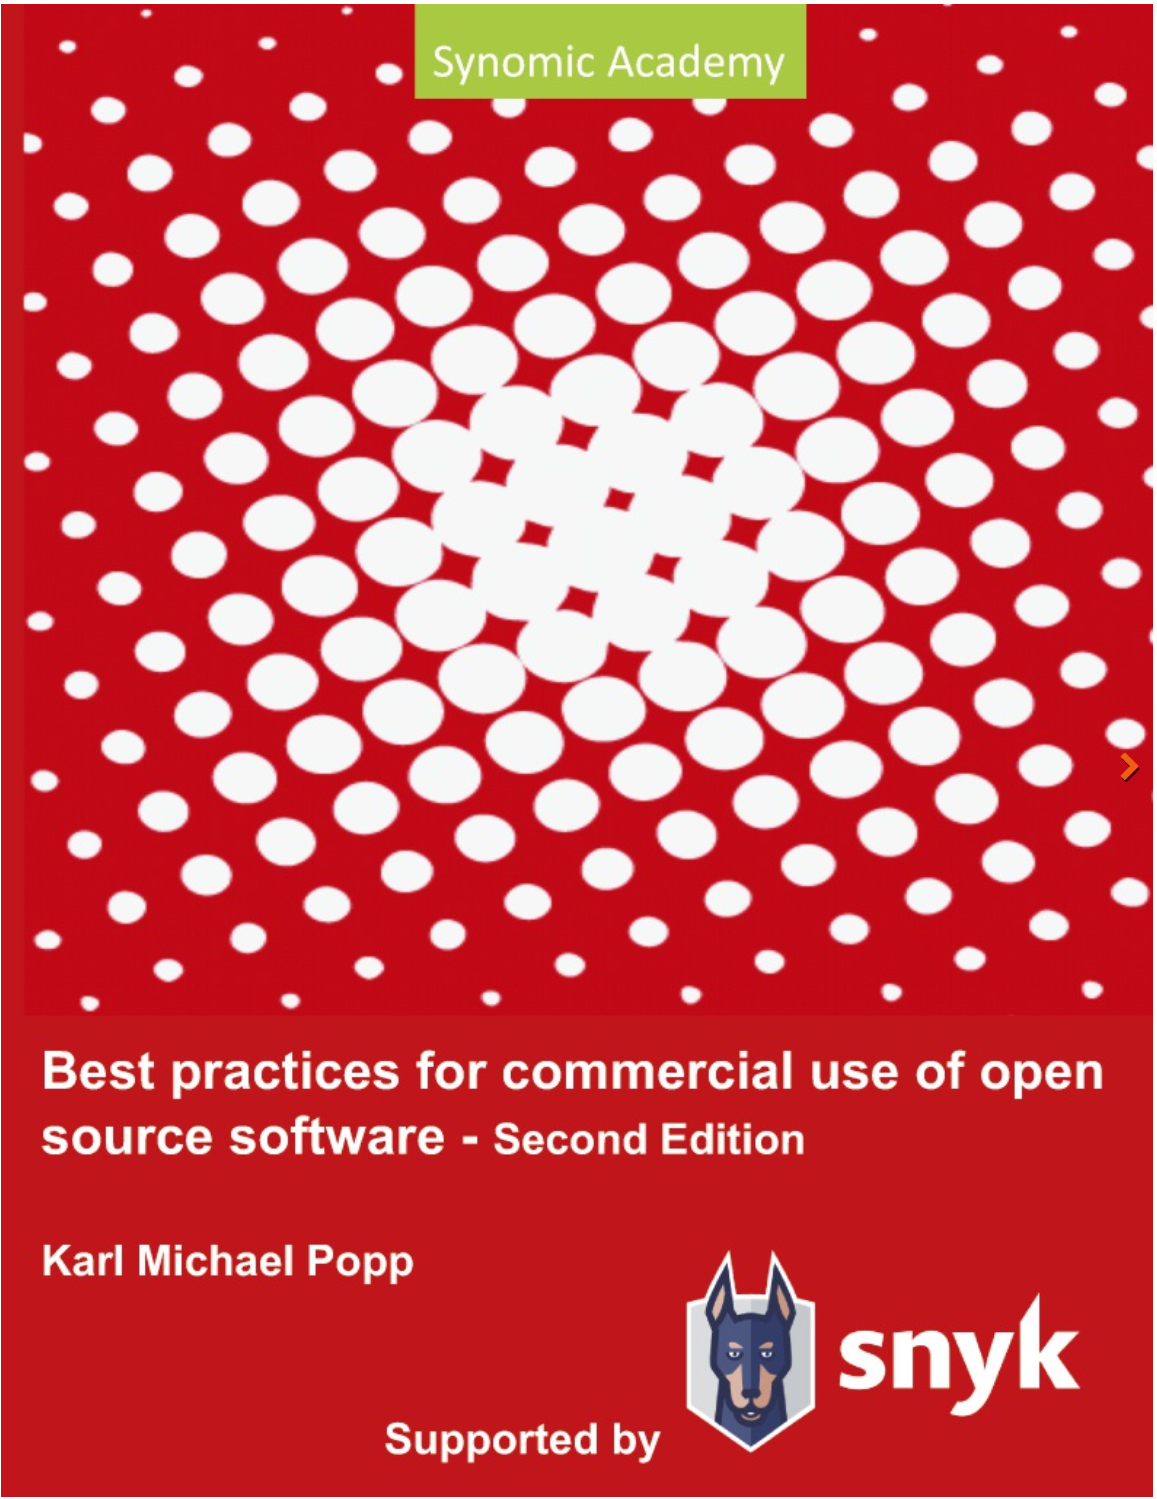 """Open Source book - To reach excellence you have to be equipped with knowledge about best practices for open source. This section of the website is meant to provide you with the latest knowledge about open source, esp. open source licensing in commercial software, to reach excellence in open source matters. Please find more information in the book """"Best practices for commercial use of open source software""""."""